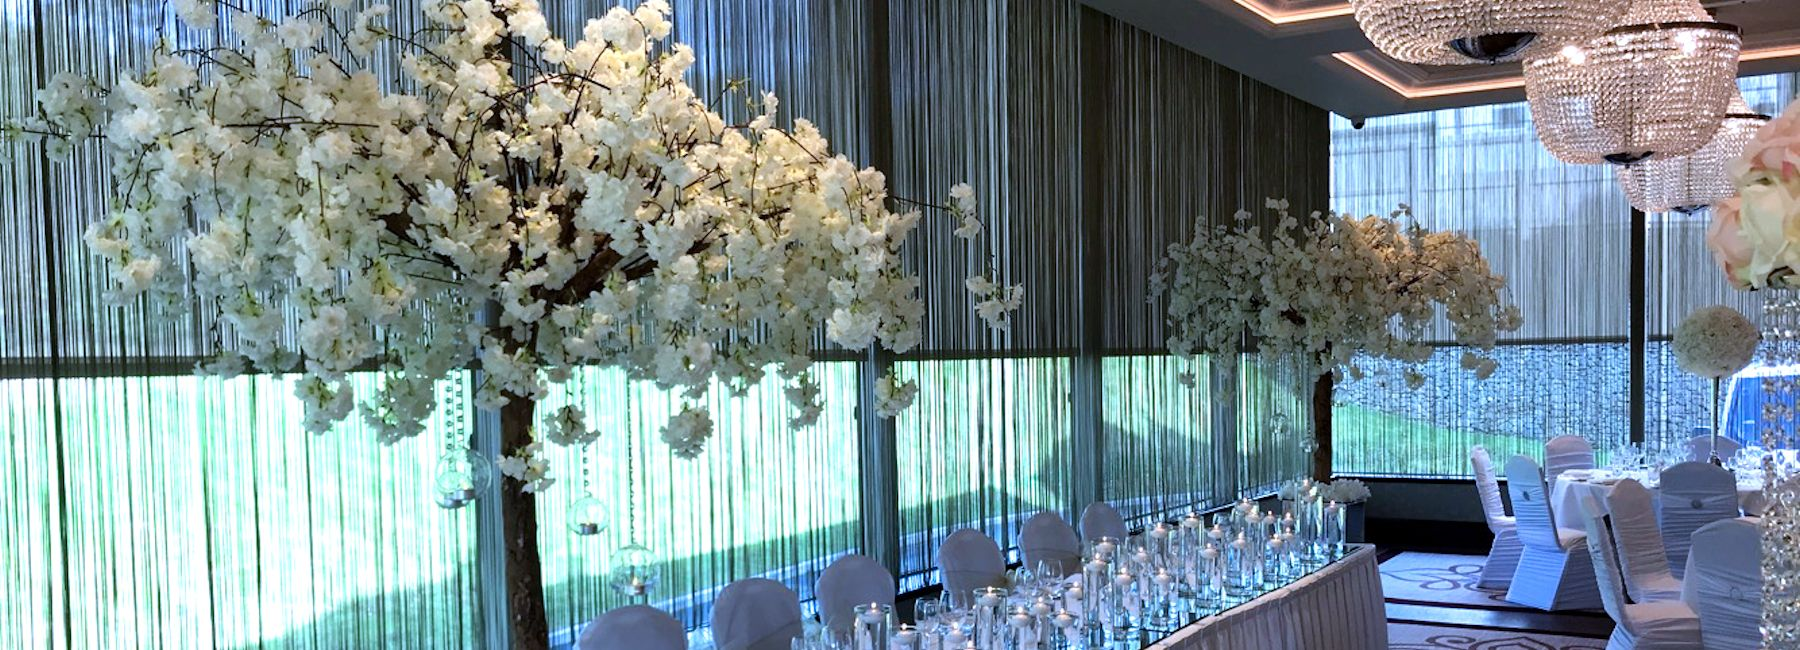 Photo of Wedding blossom trees and wedding candles